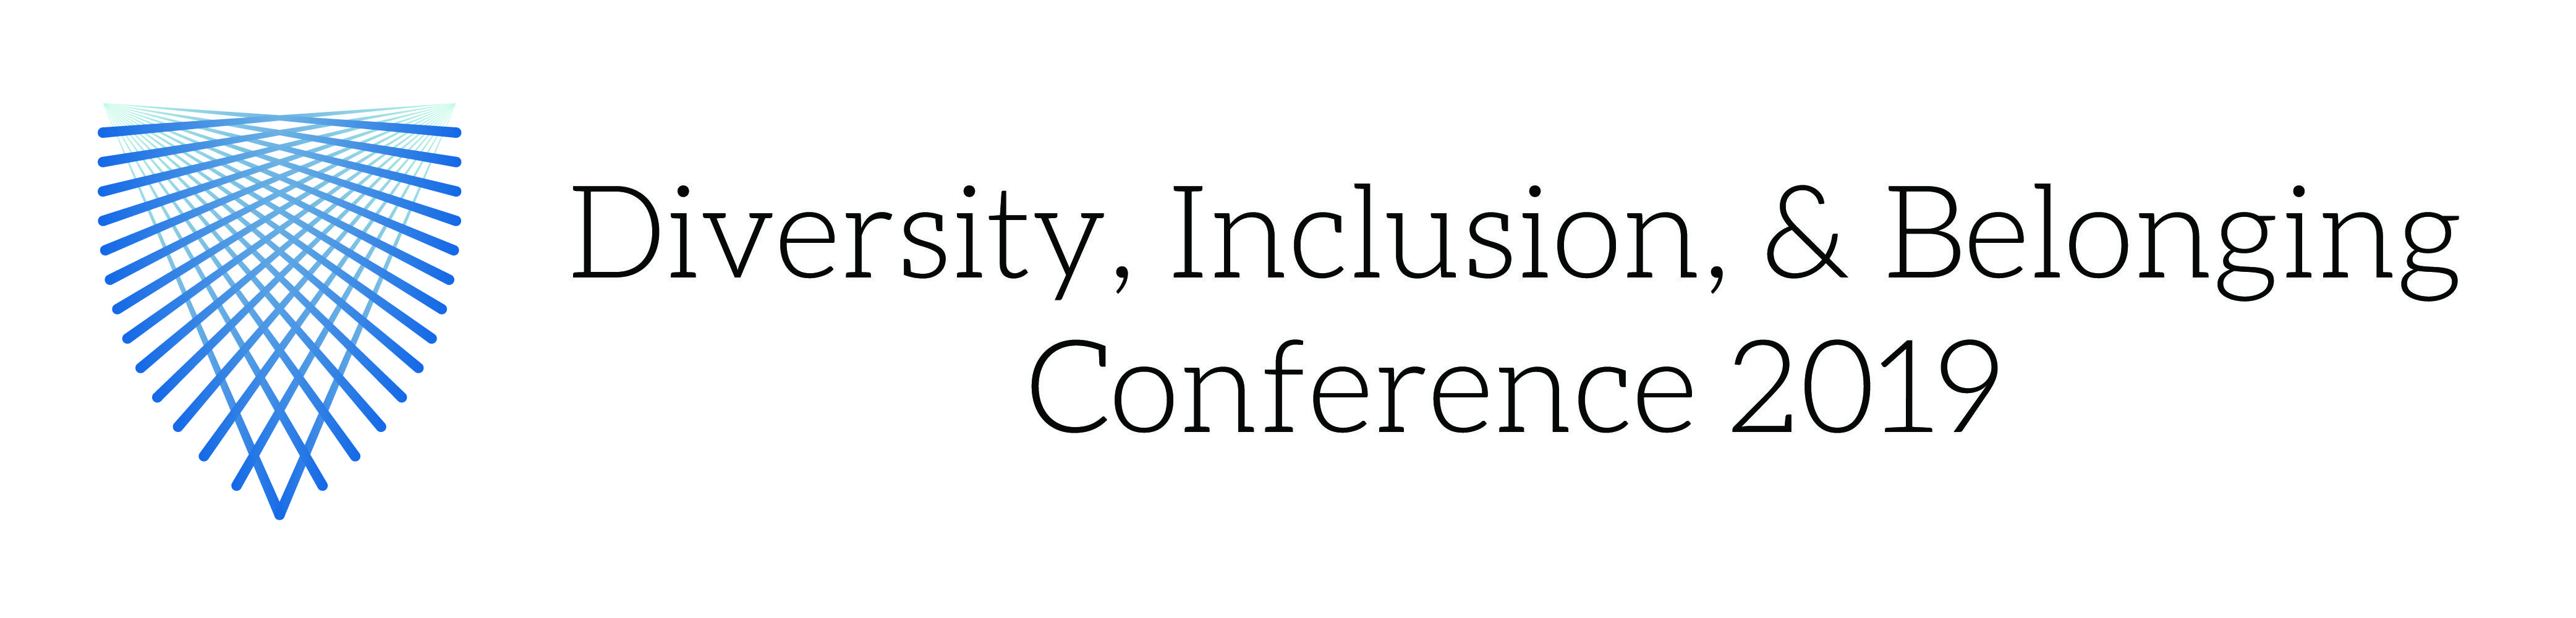 Diversity, Inclusion, & Belonging Conference 2019